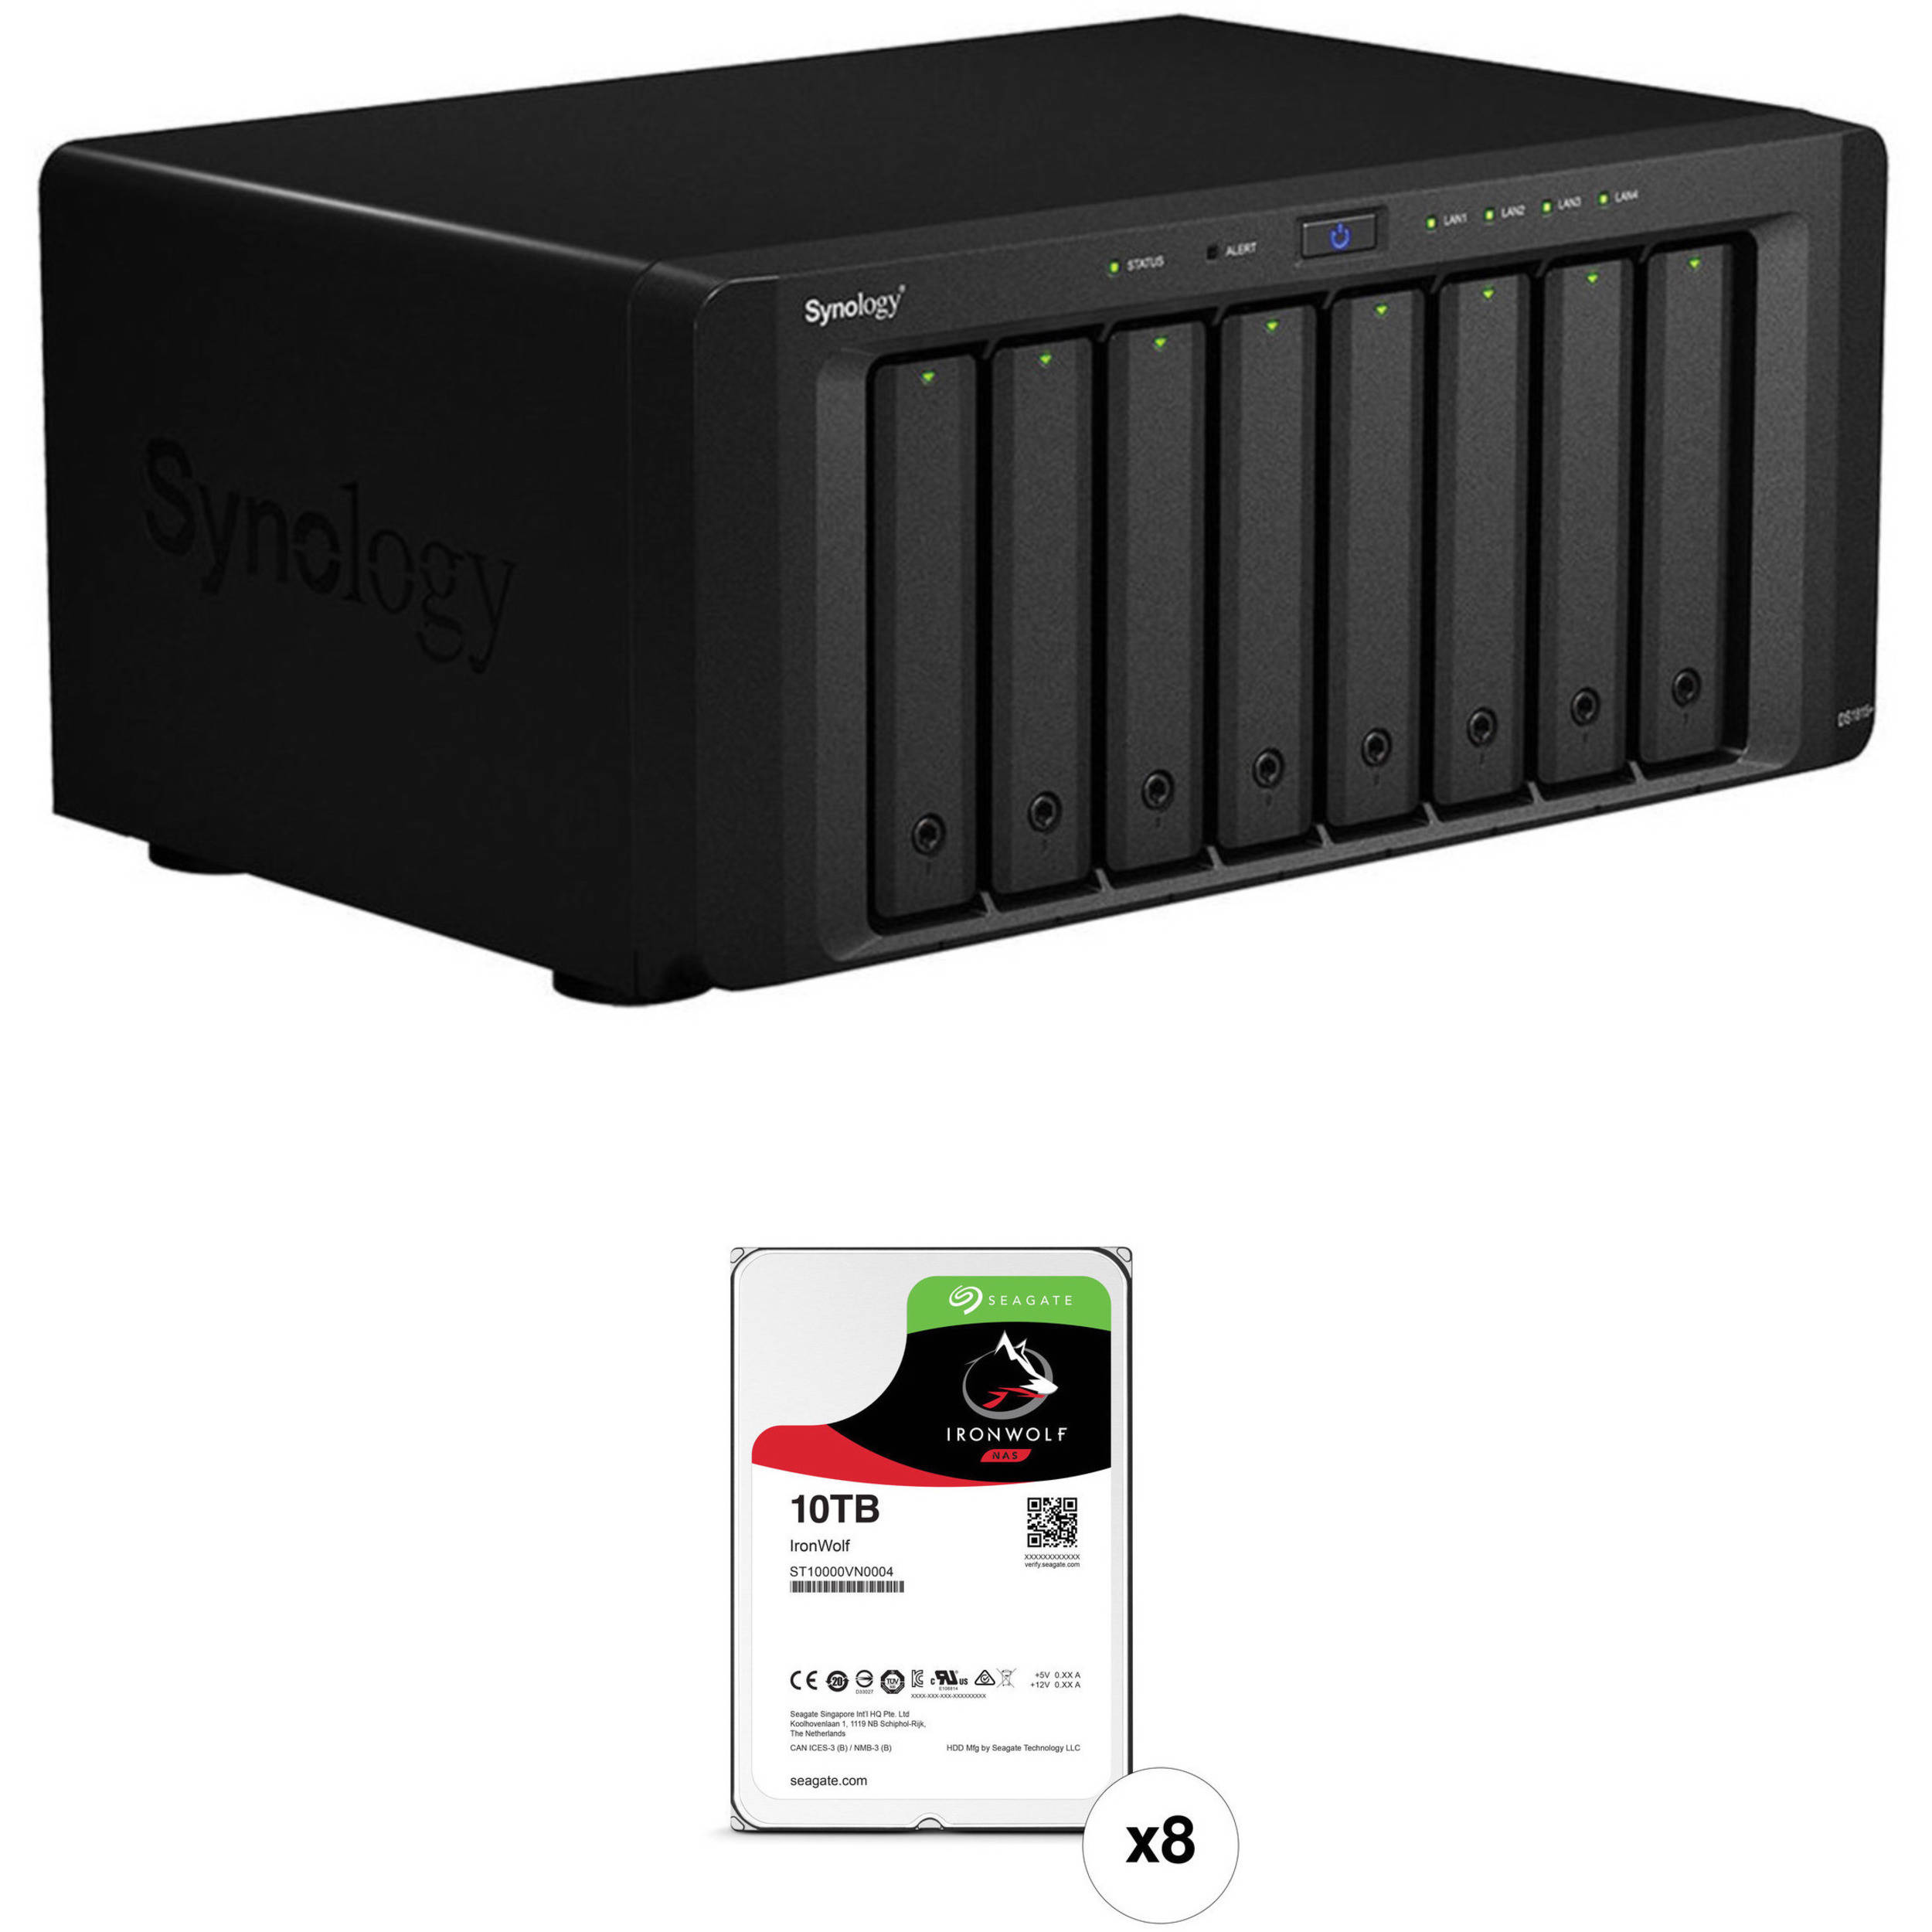 Synology DiskStation 80TB DS1815+ 8-Bay NAS Server (8 x 10TB)